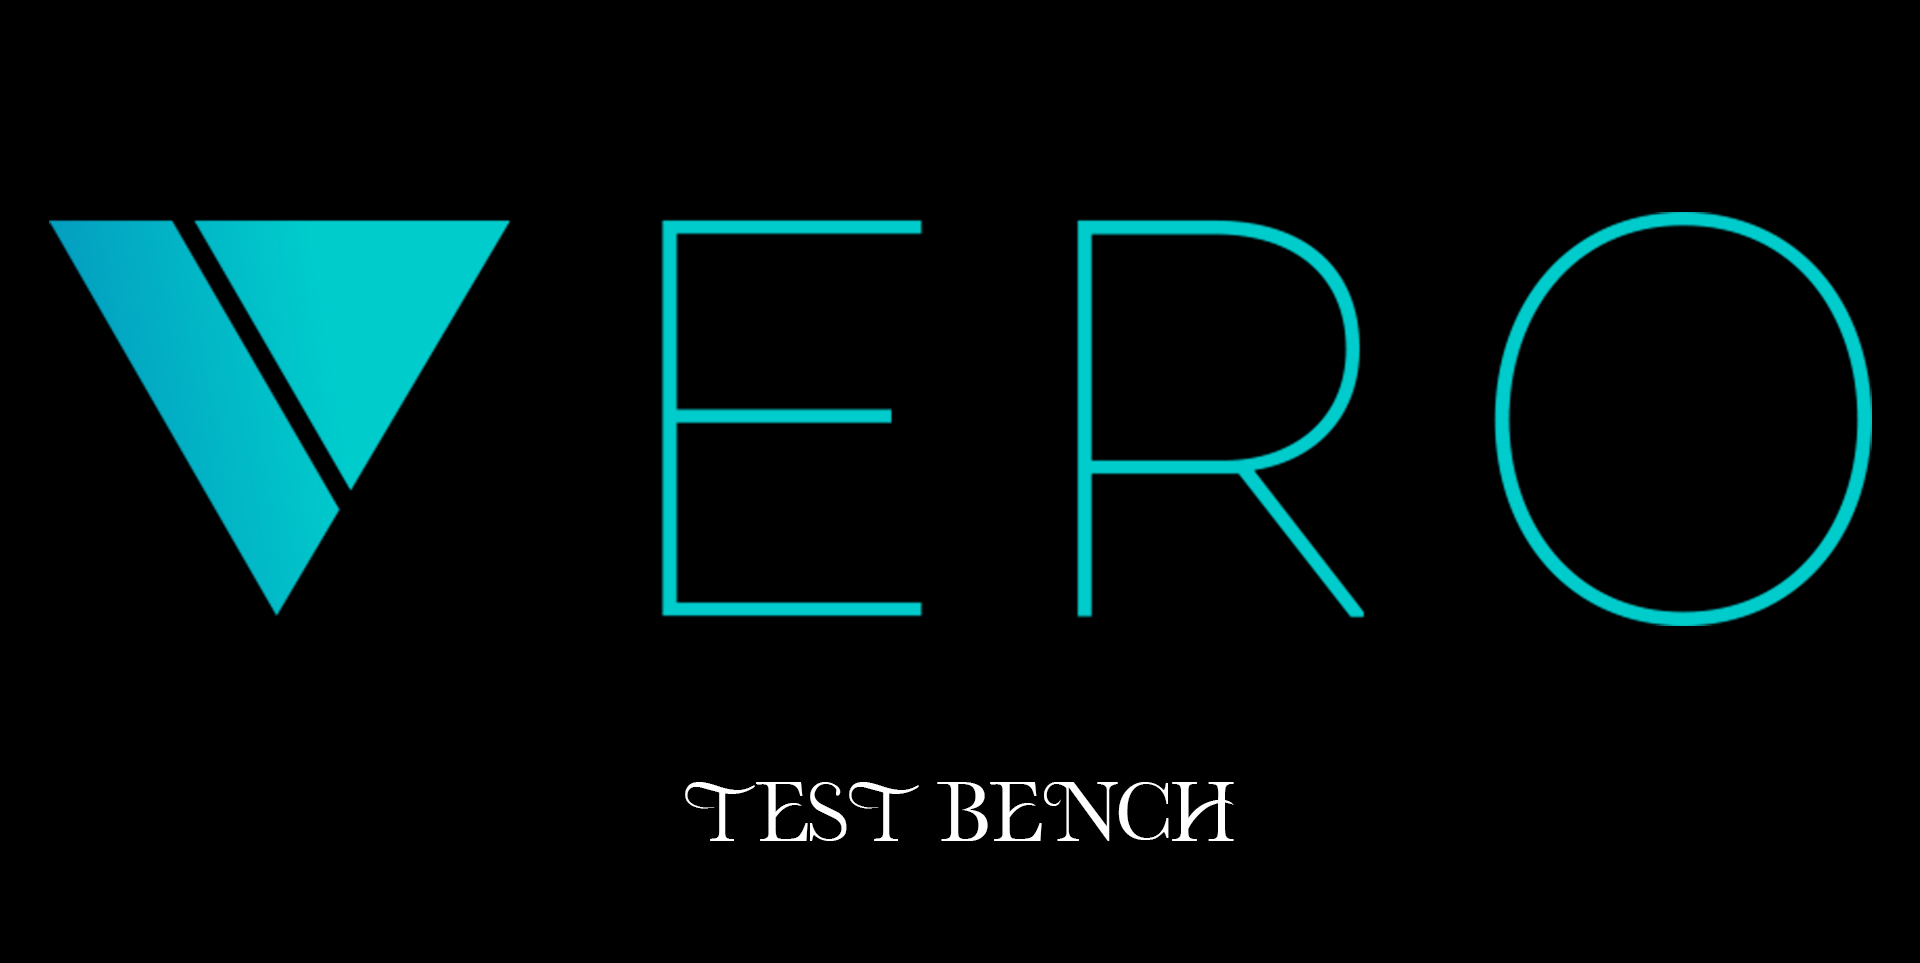 Test bench - Vero - une